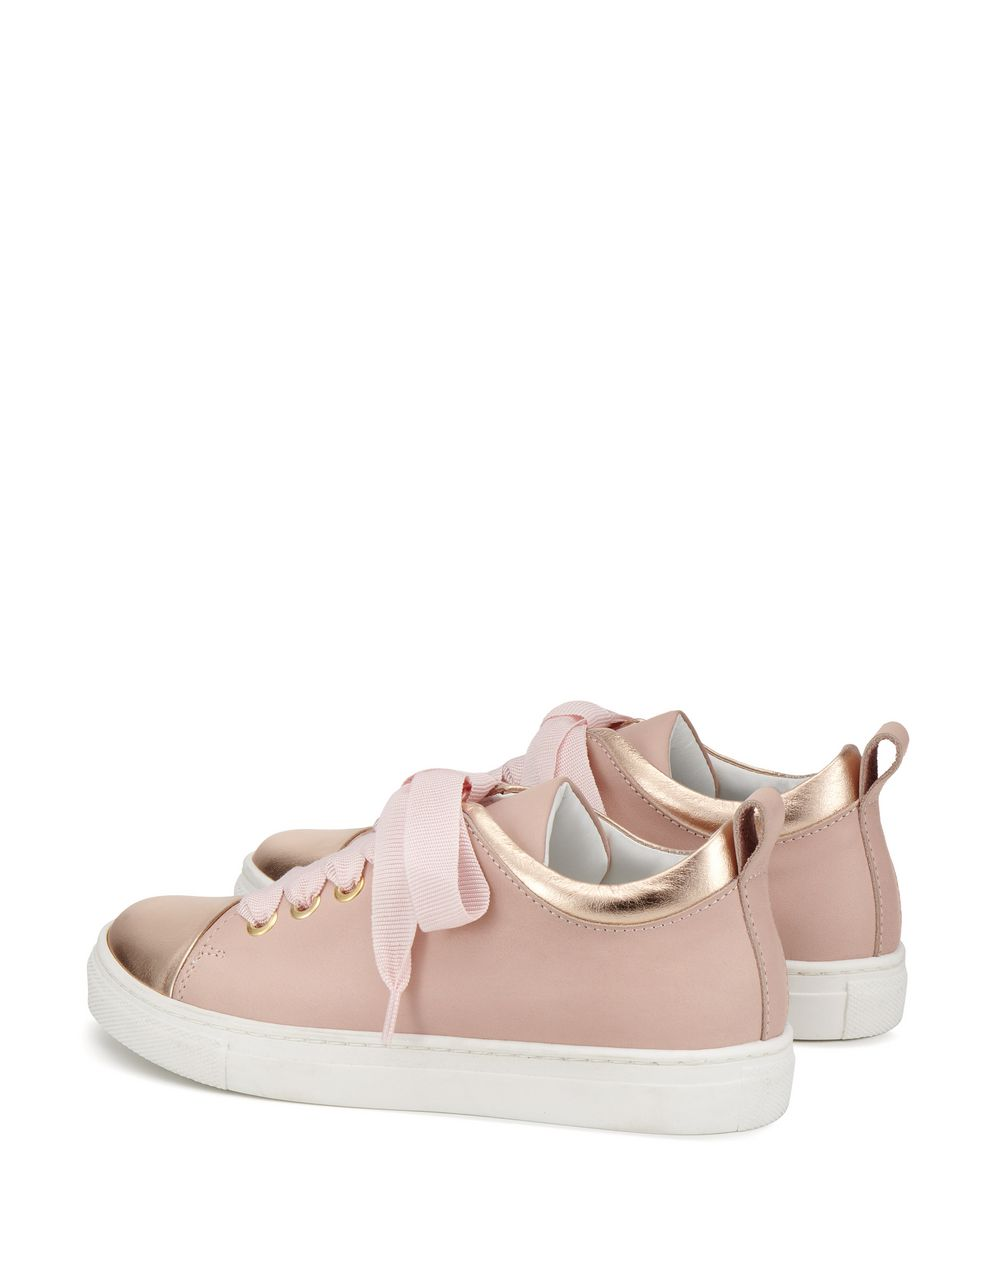 PINK RIBBON SNEAKERS  - Lanvin